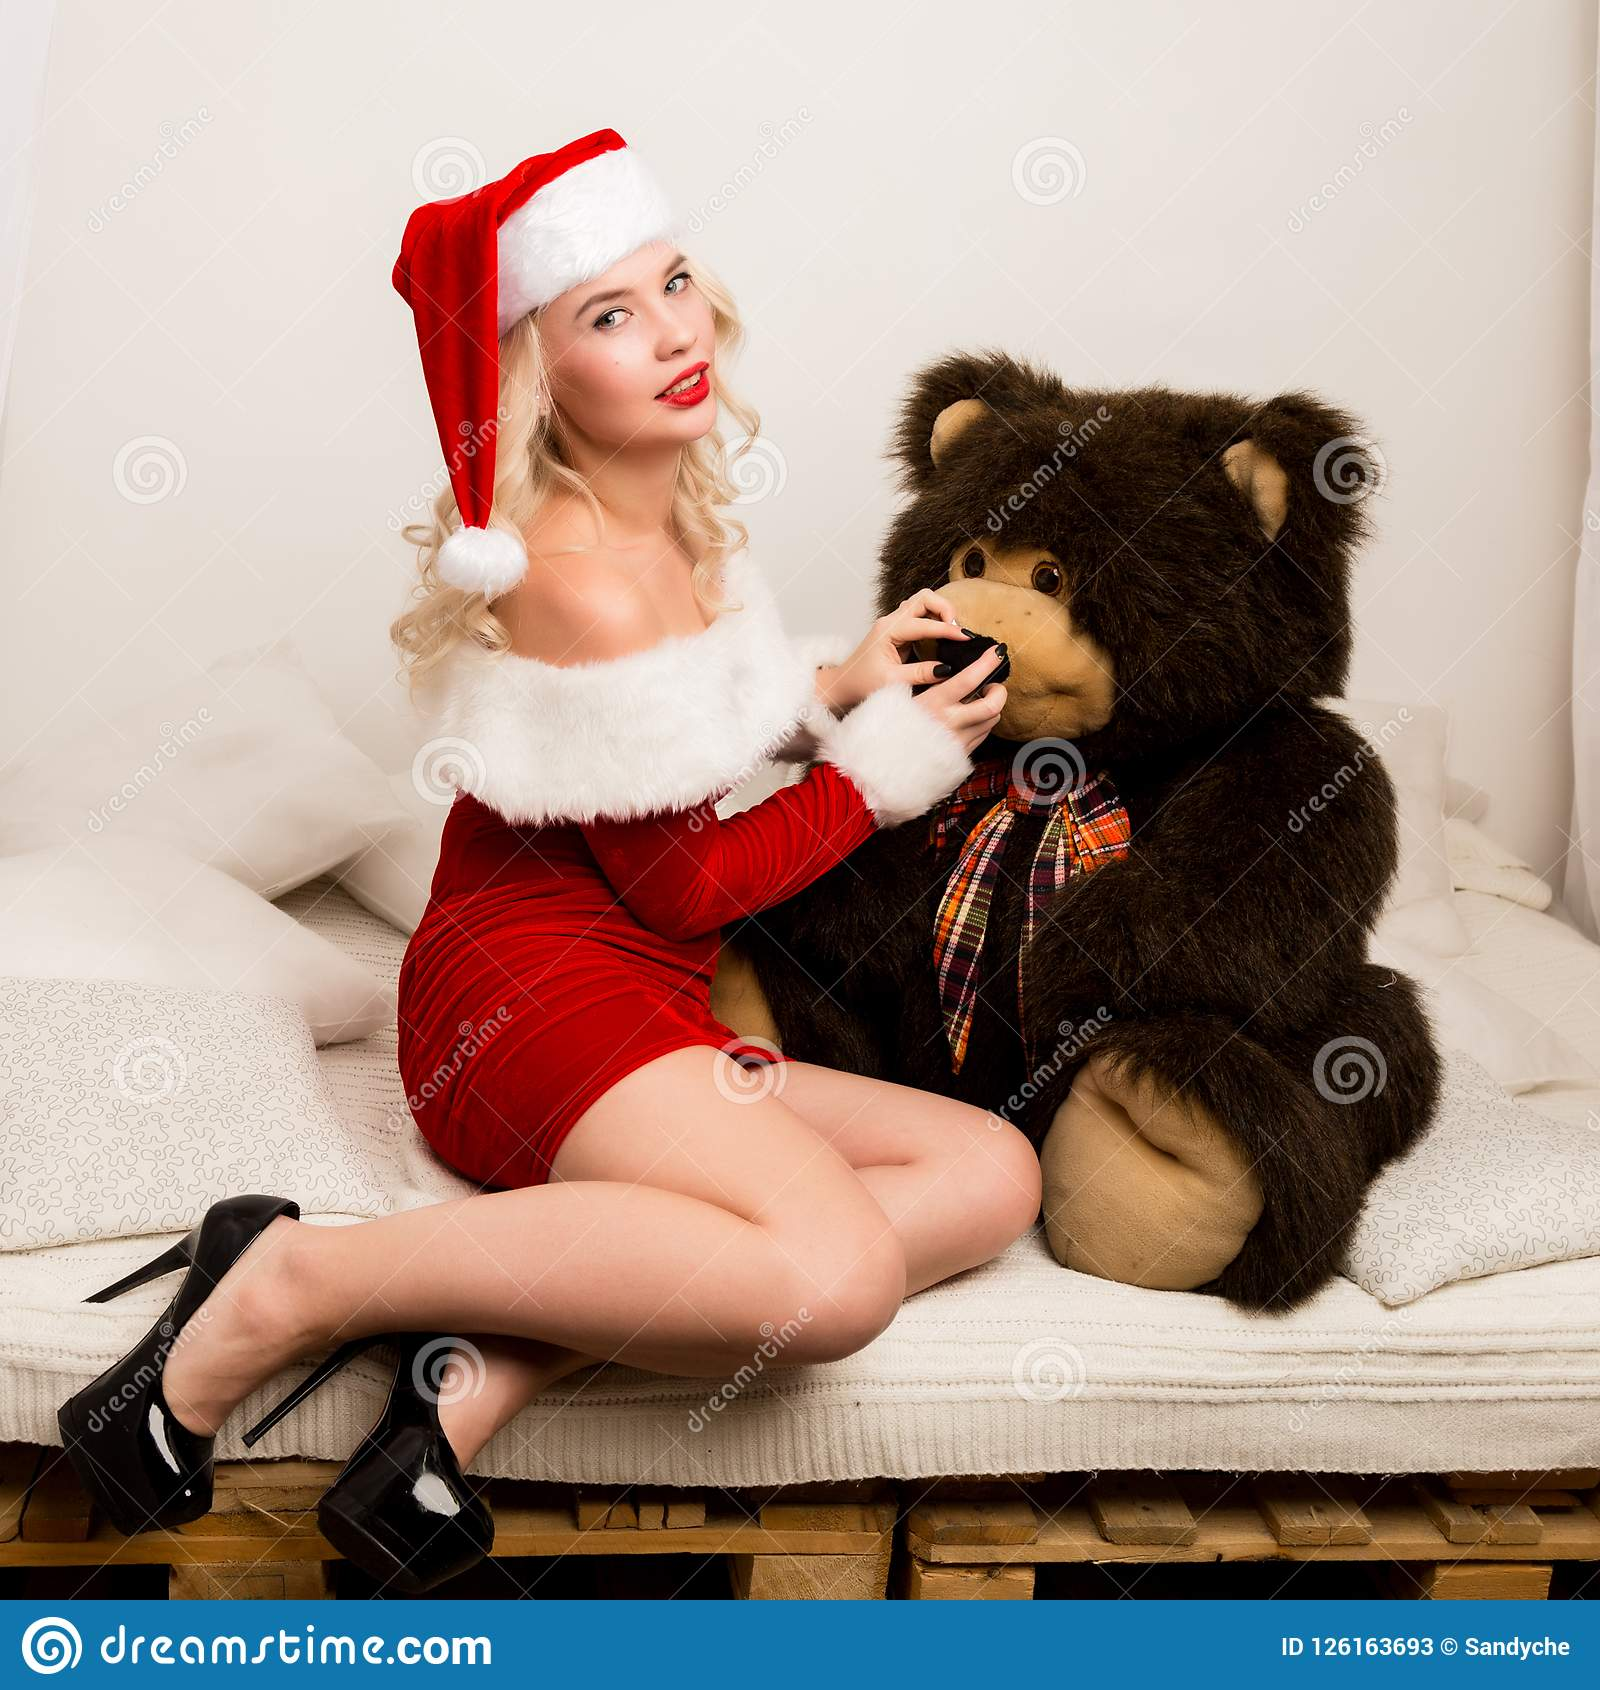 cock bear girl hot teddy